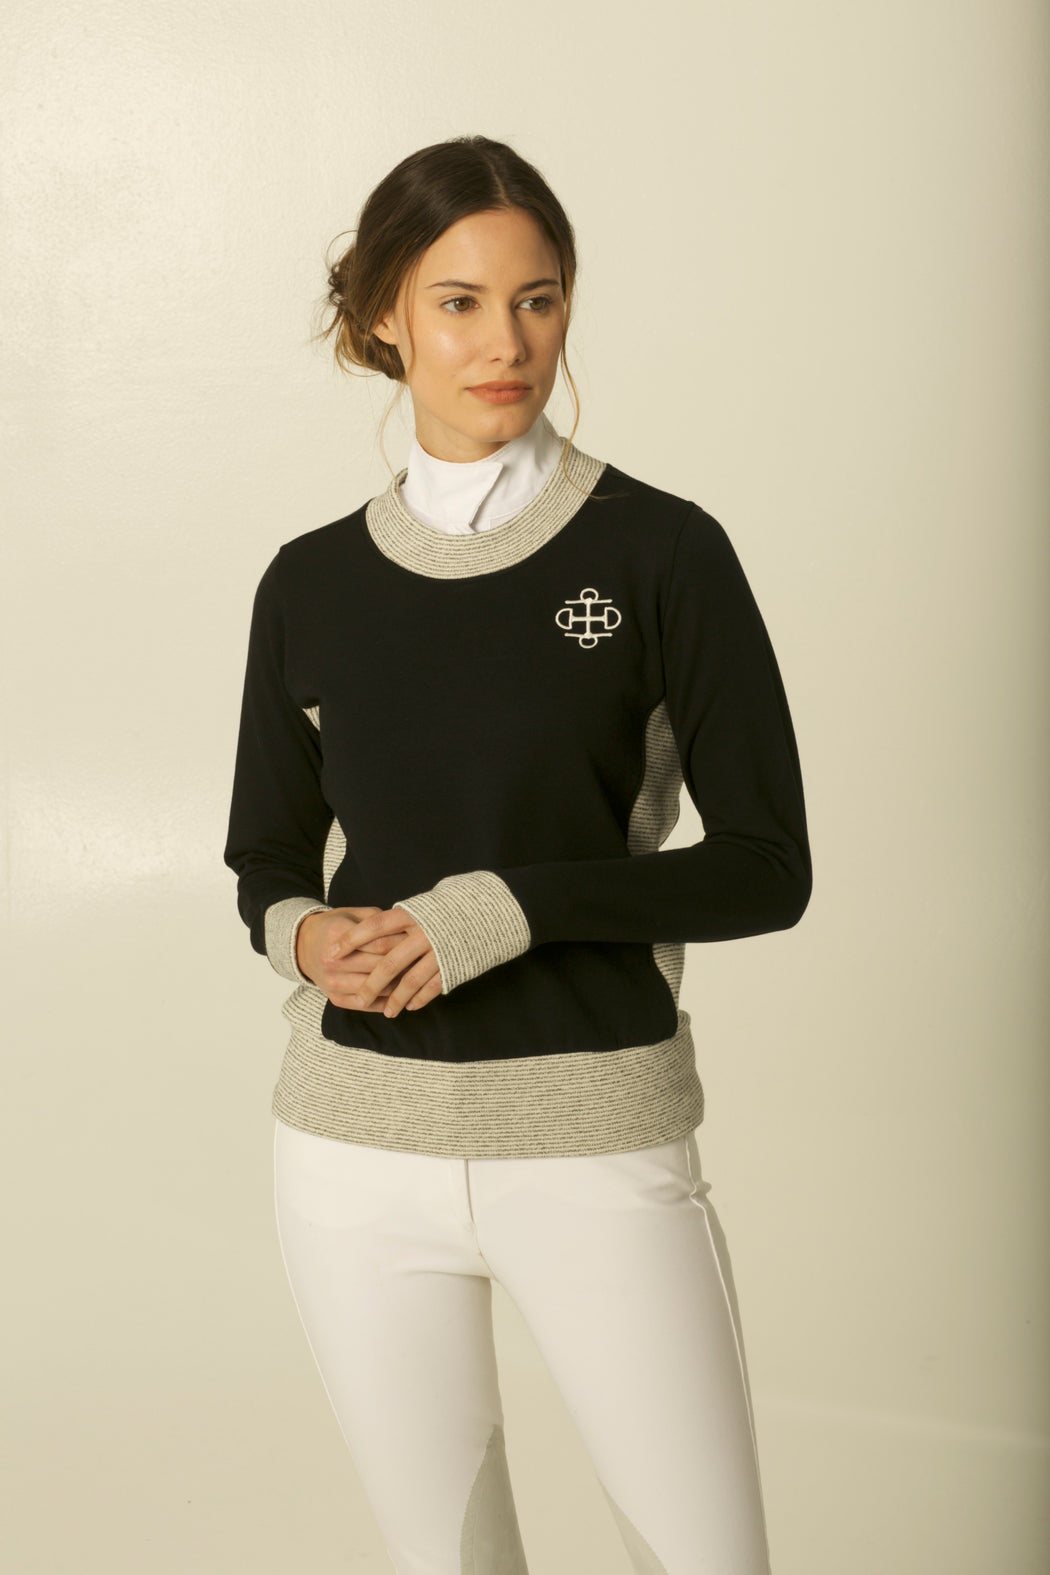 THE BLACK & IVORY BAMBOO CREWNECK SWEATER